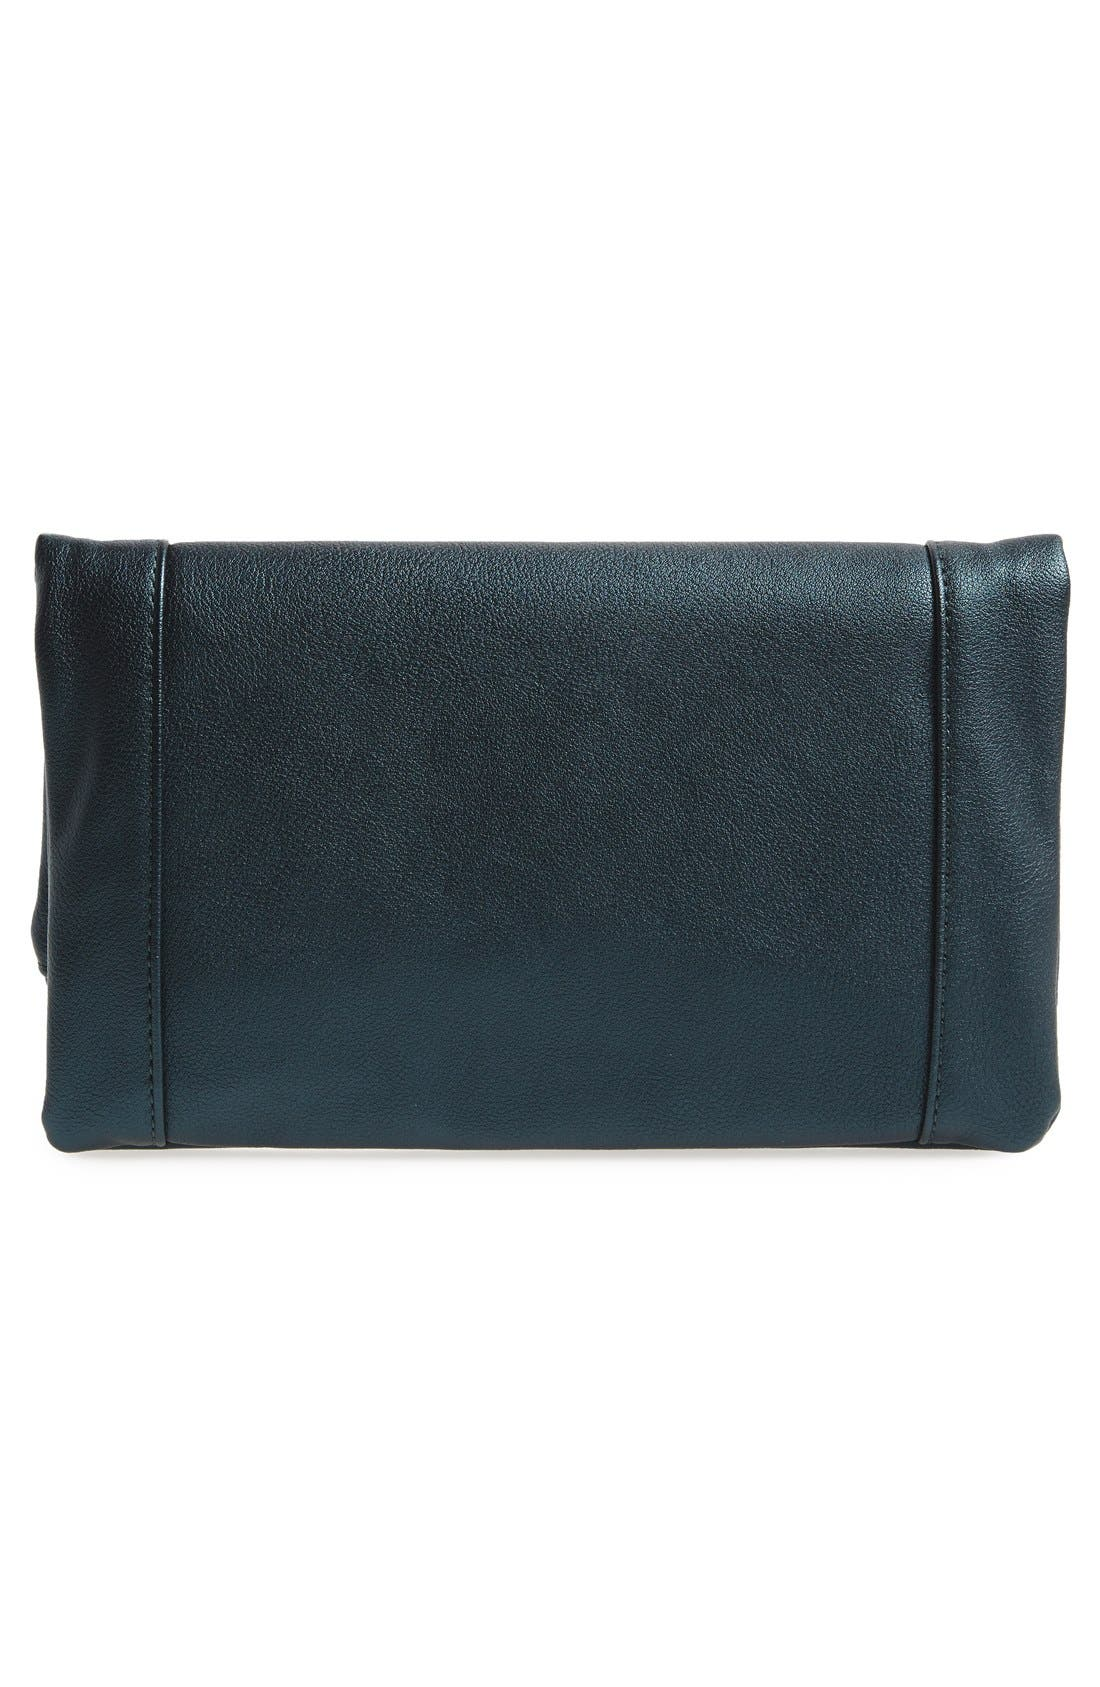 'Marlena' Faux Leather Foldover Clutch,                             Alternate thumbnail 3, color,                             Deep Teal